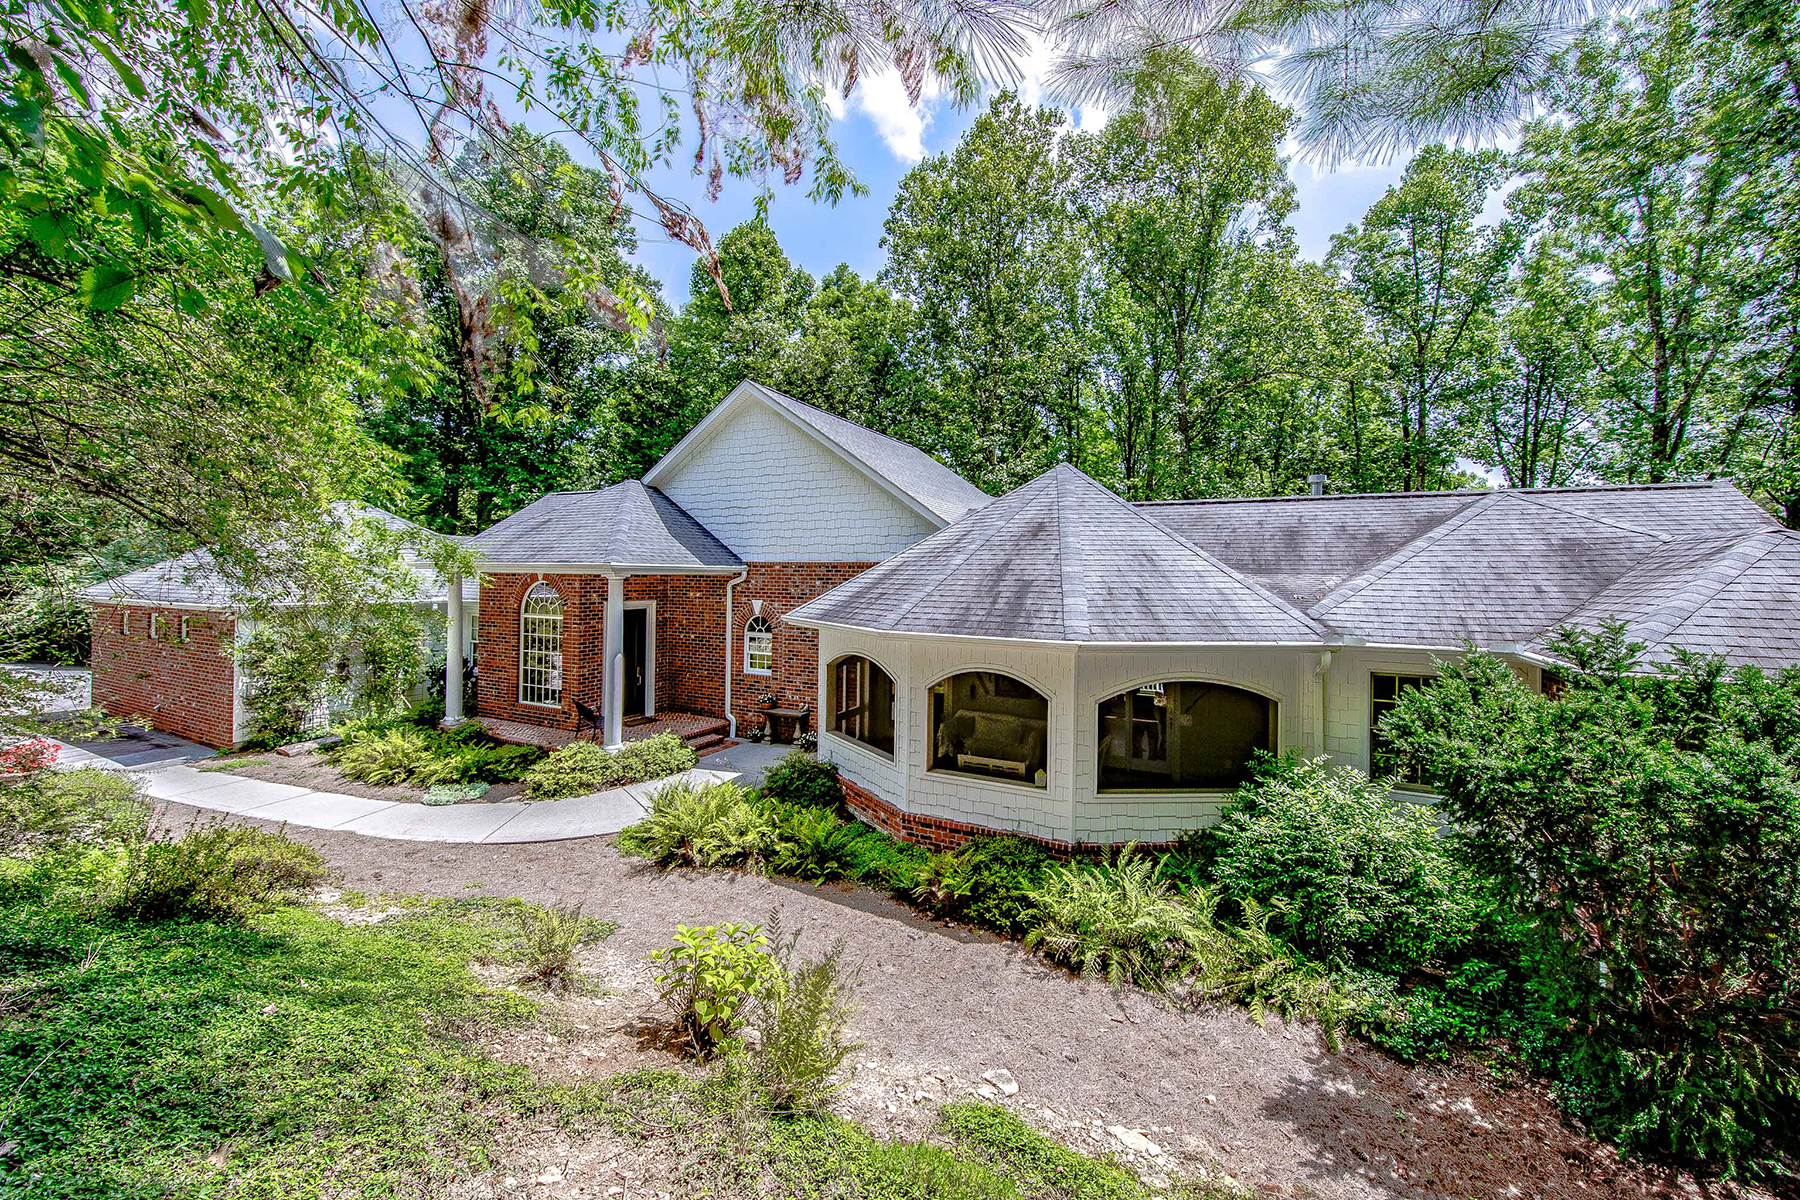 Single Family Home for Active at TRENHOLM WOODS 135 Connemara Overlook Drive Hendersonville, North Carolina 28739 United States